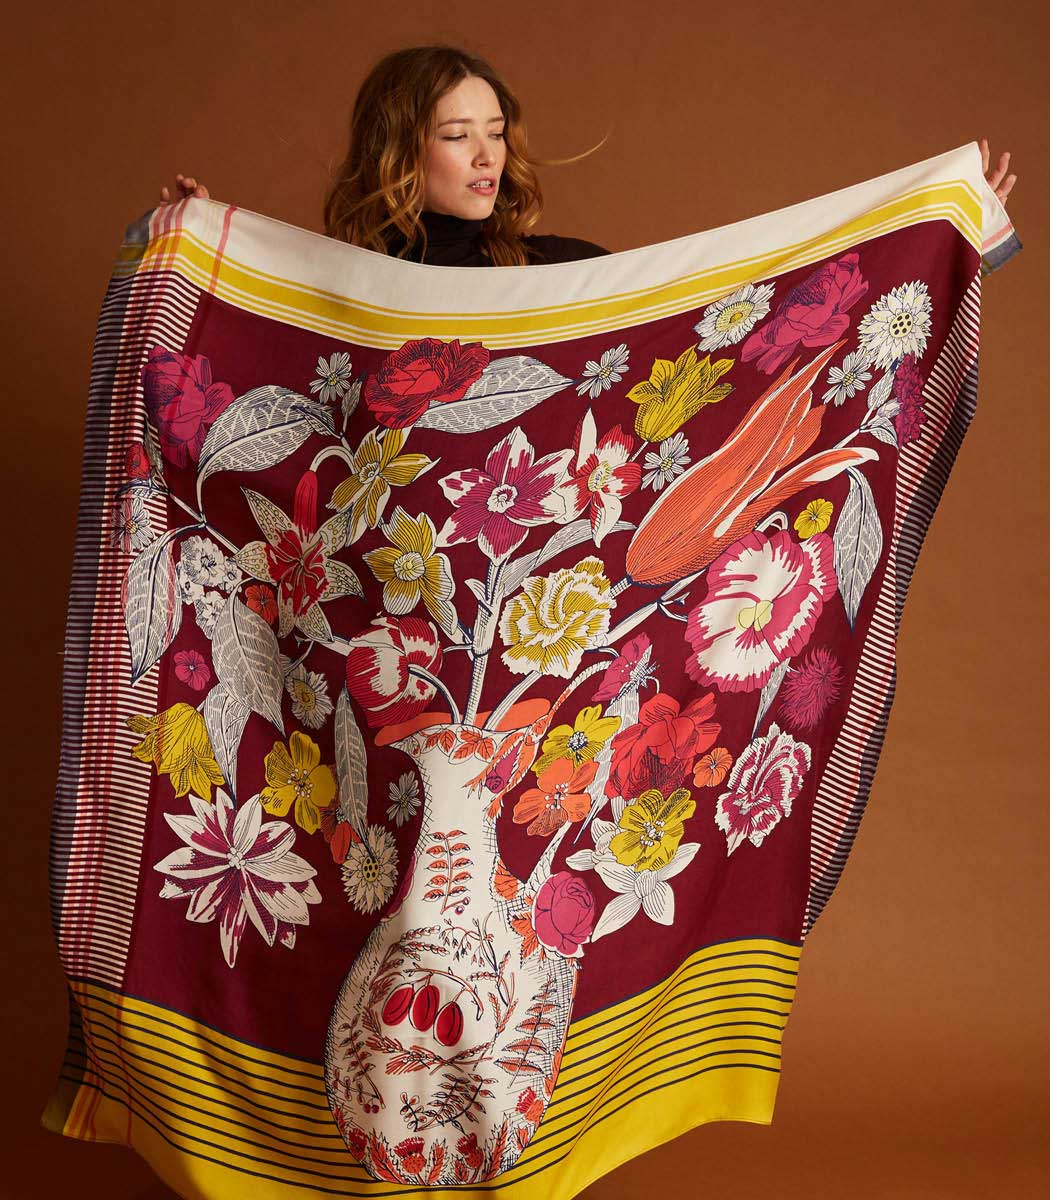 Beautifully soft, with stunning prints